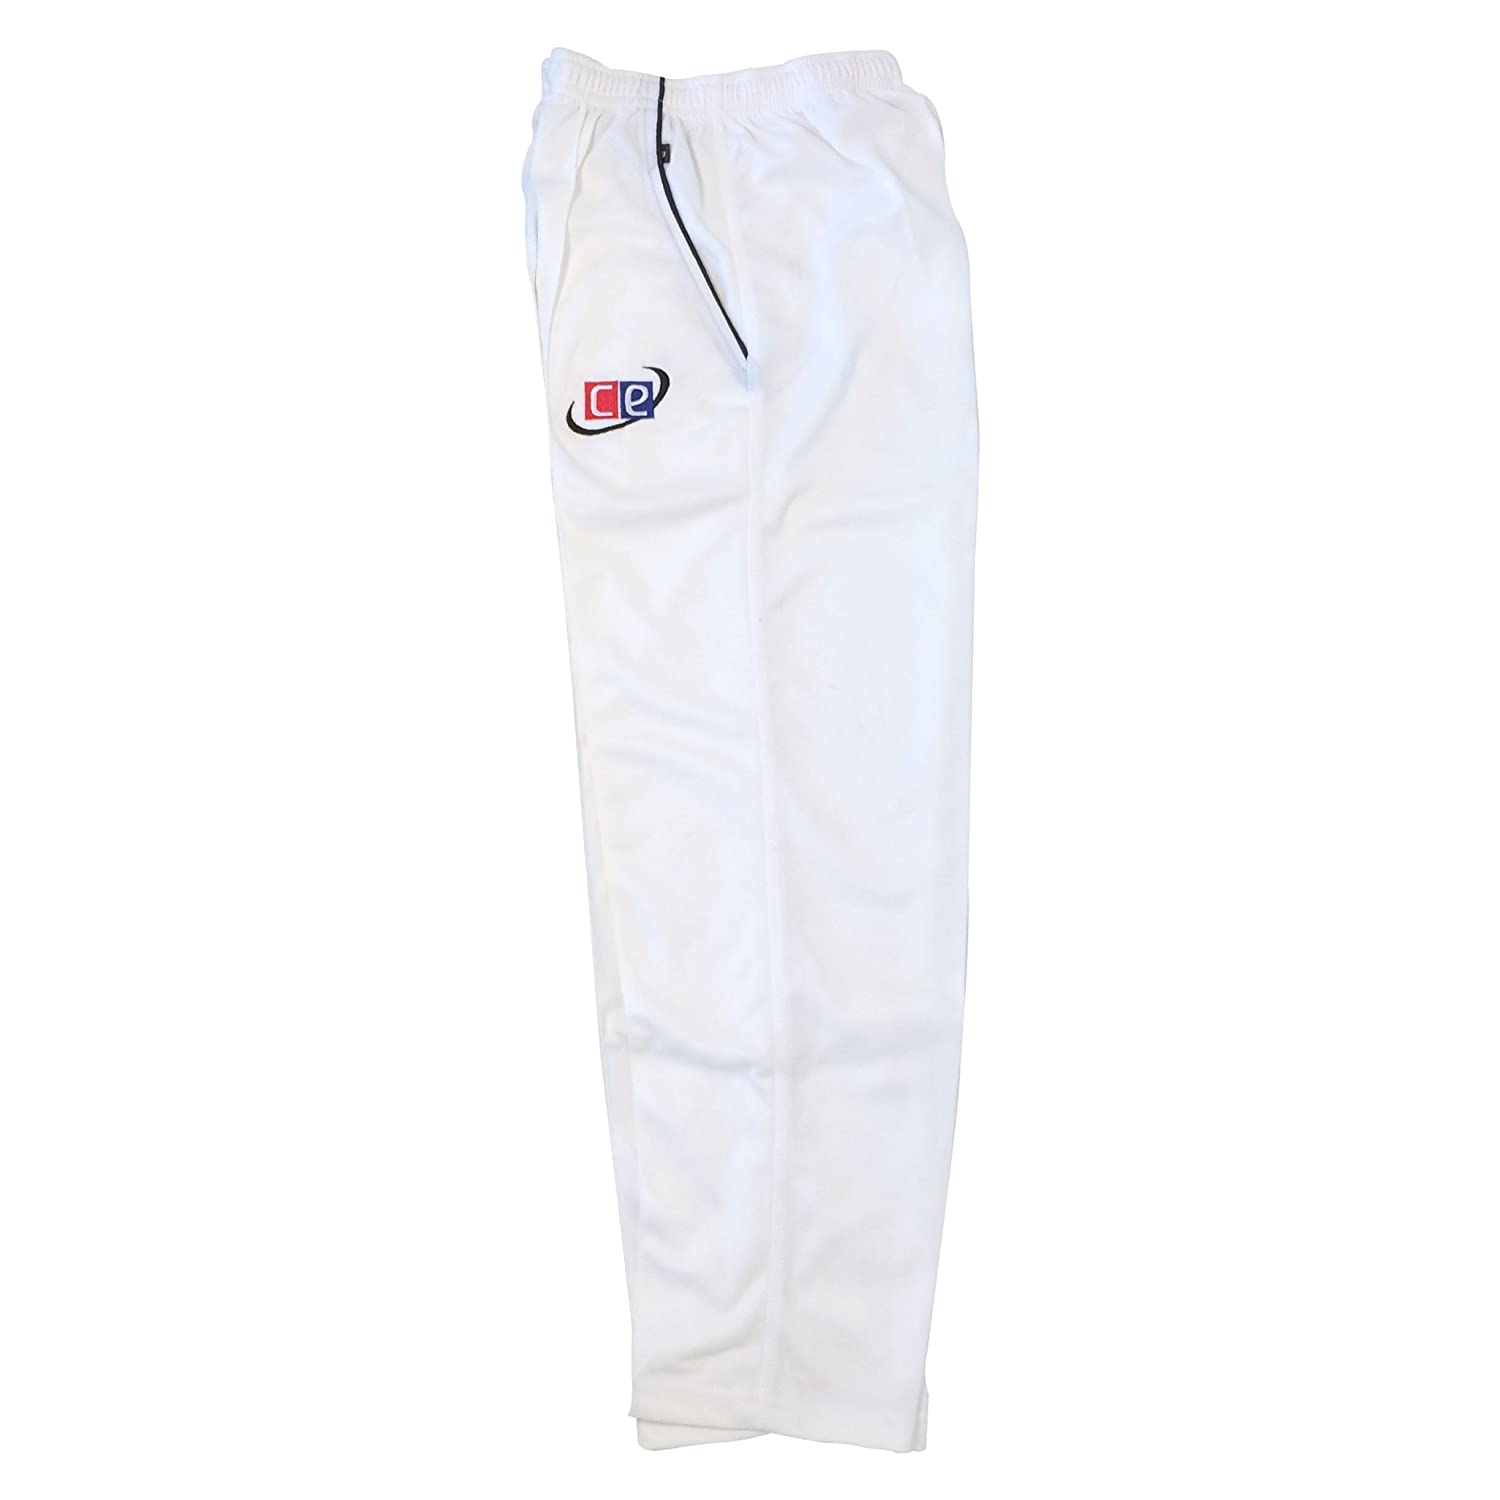 df1f973ad832 Amazon.com   CE Cricket Whites Pants - Traditional Cricket Trousers - by  Cricket Equipment USA (Pants